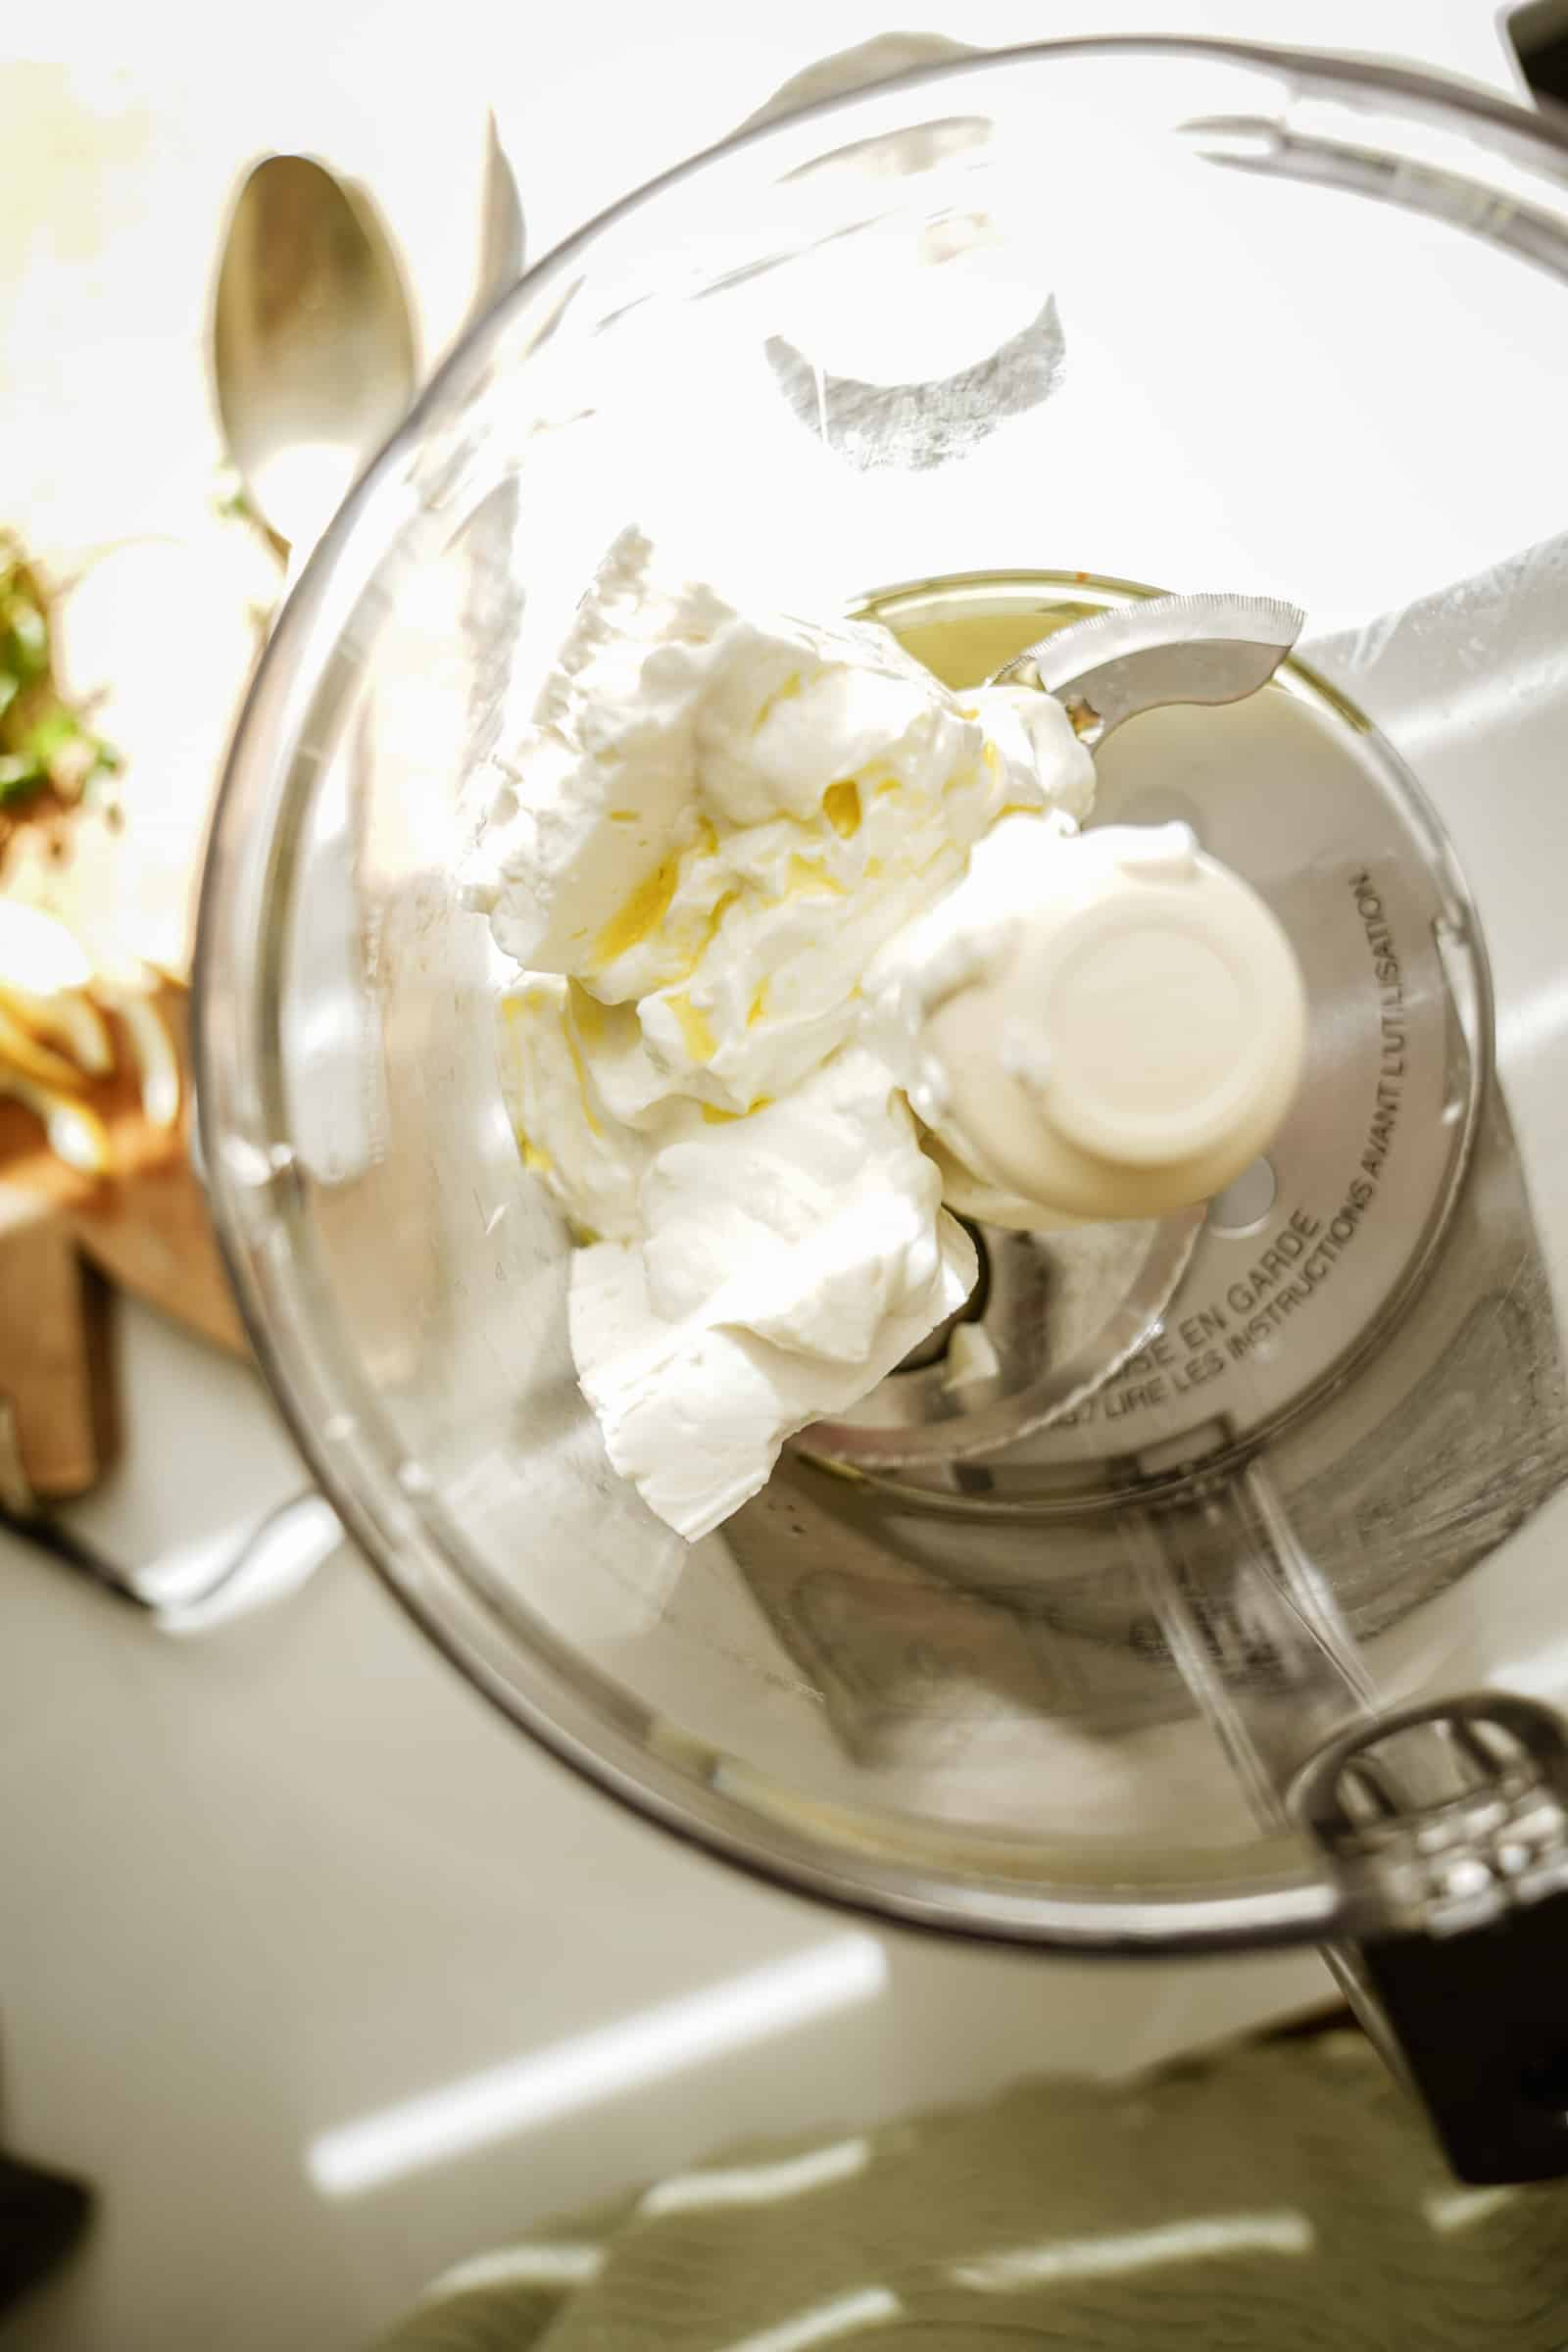 Ingredients for whipped feta in a bowl